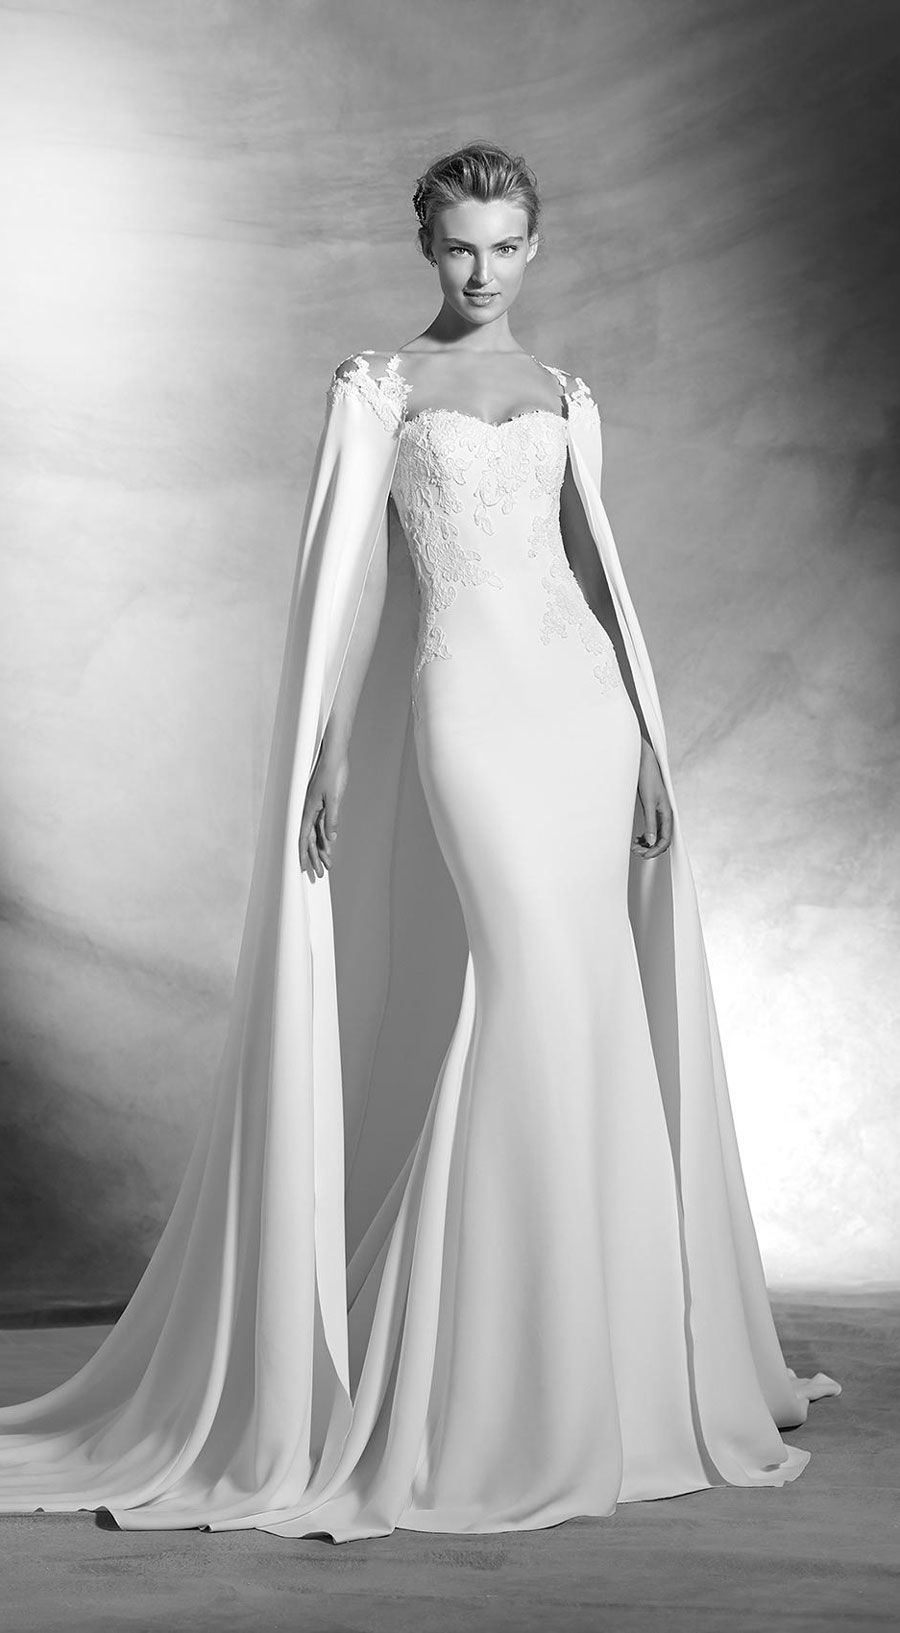 Wedding Dress Pronovias 2016 Atelier bridal gown with cape, wedding ideas, wedding inspiration, bride, haute couture, wedding dress with detachable cape